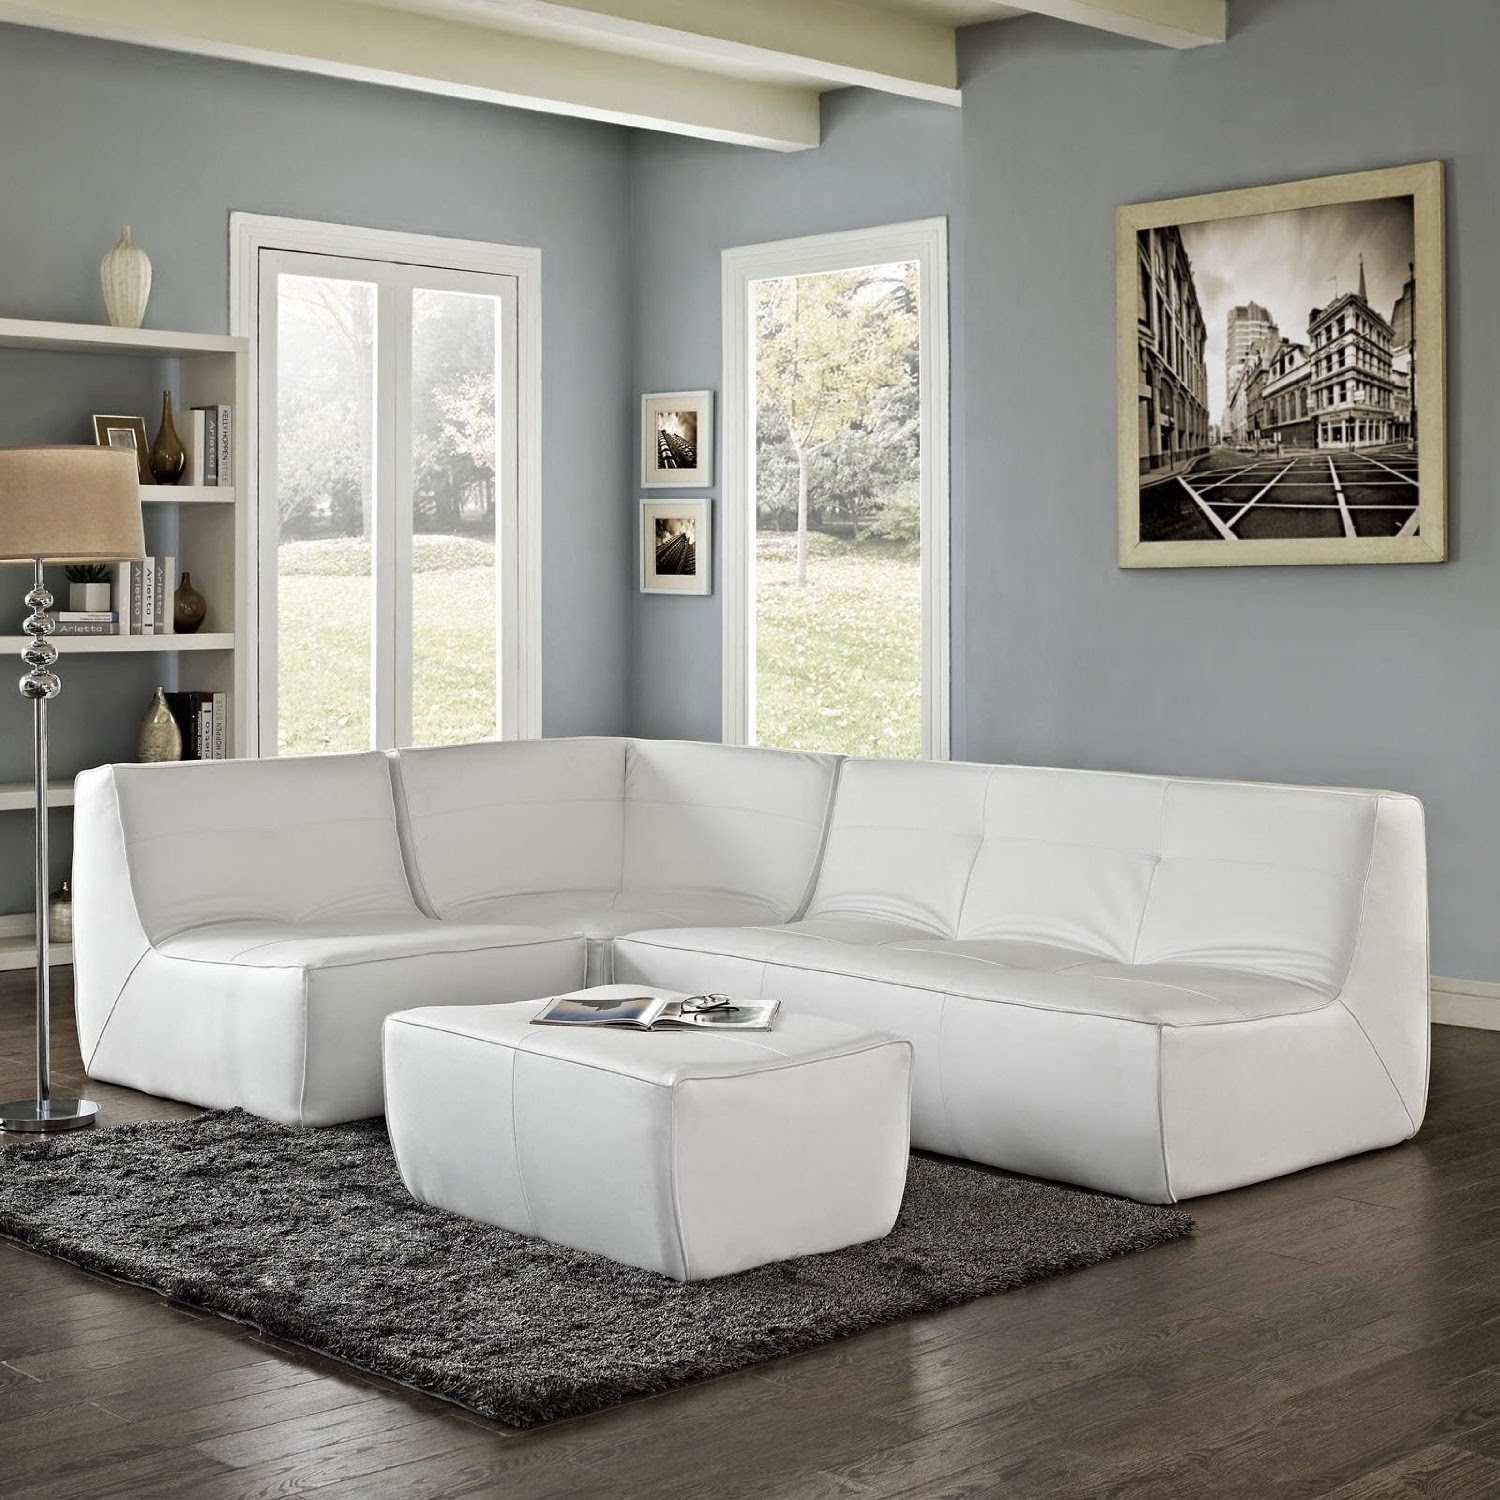 Furniture : Sectional Couch Okc Sectional Sofa Gainesville Fl For Gainesville Fl Sectional Sofas (View 8 of 10)